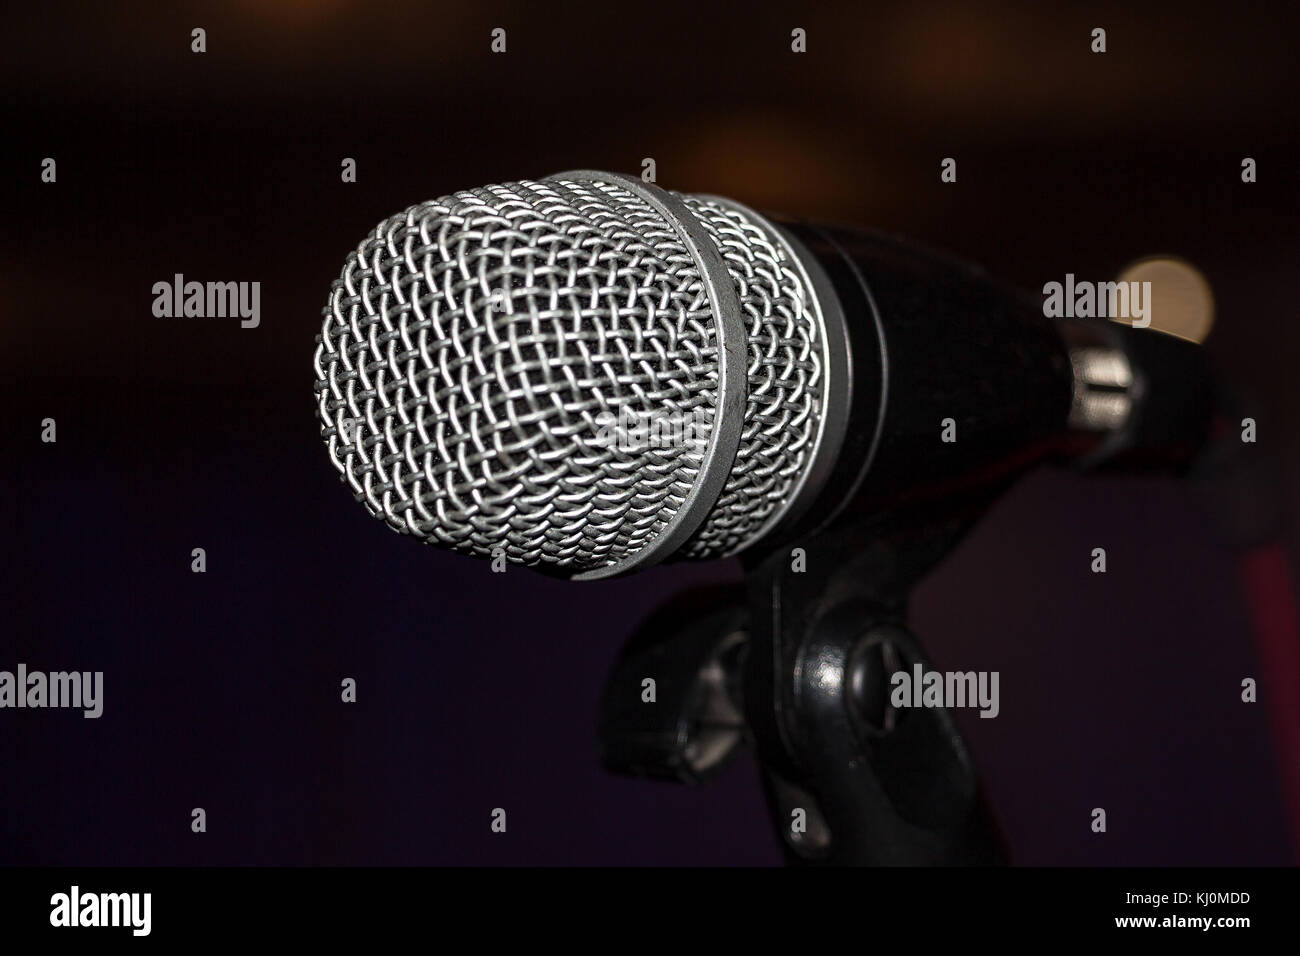 Karaoke Sing Music Record Dark Stock Photos & Karaoke Sing Music